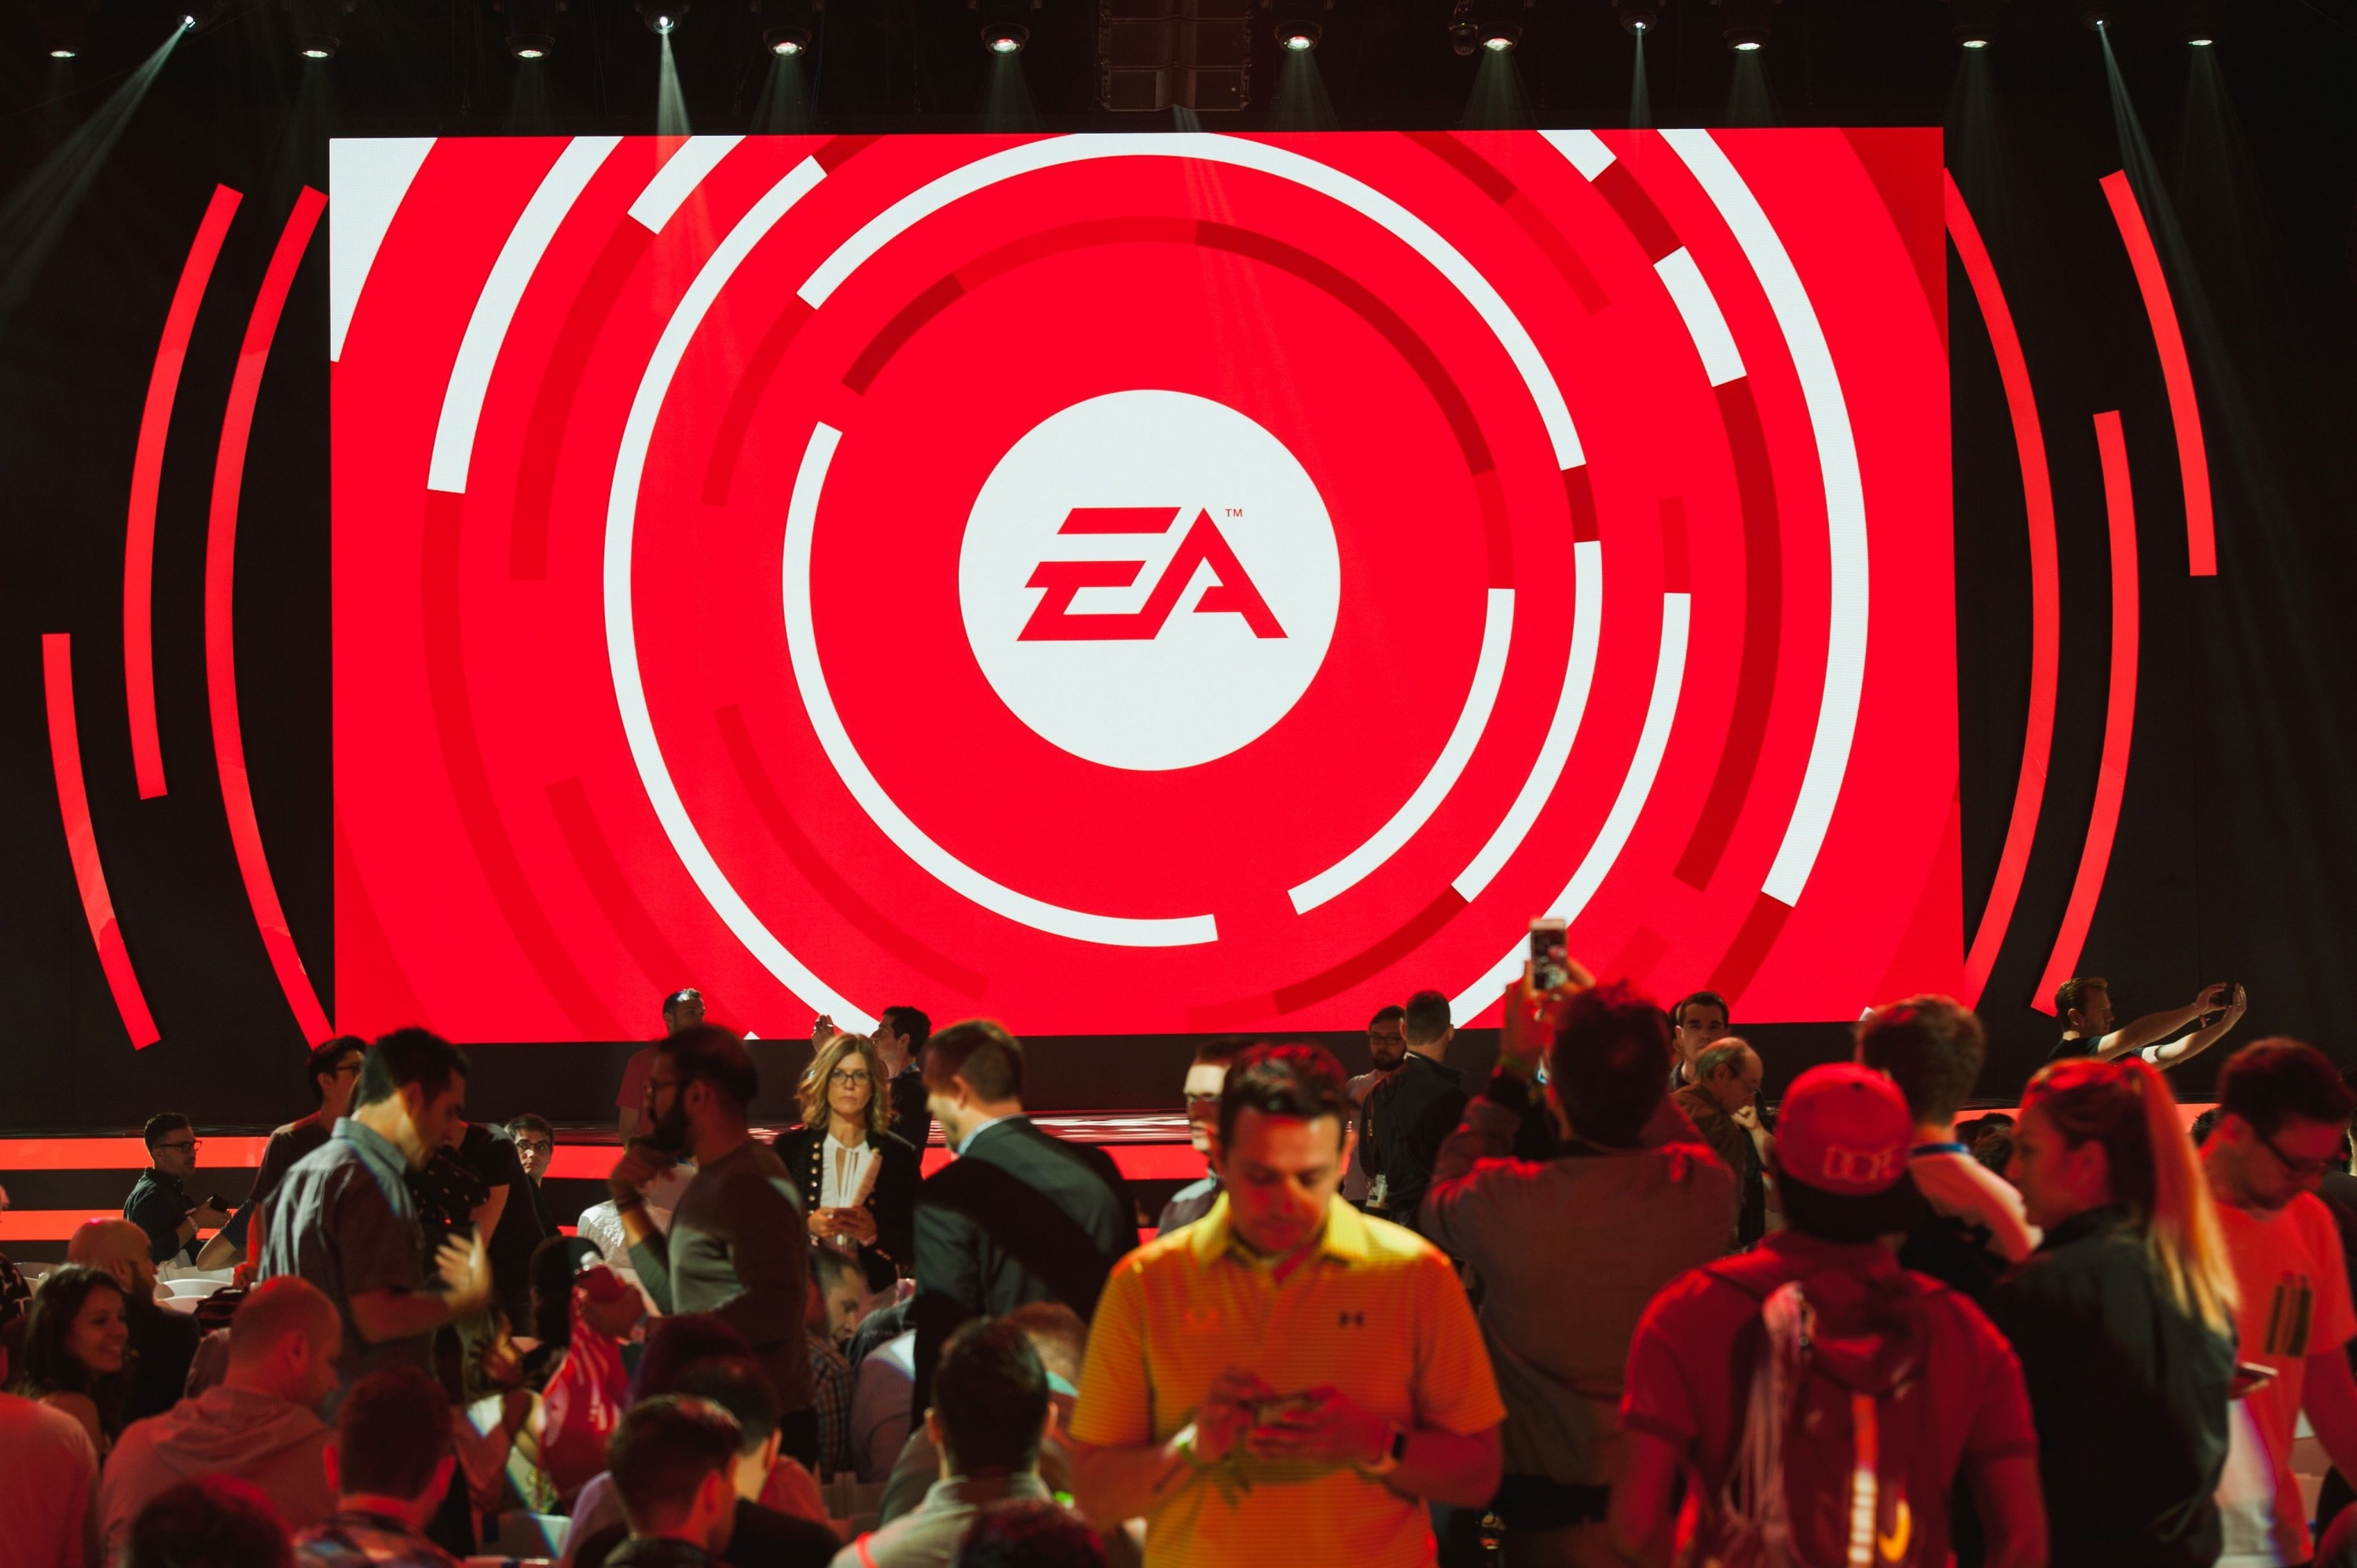 A screen showing the EA logo at a convention